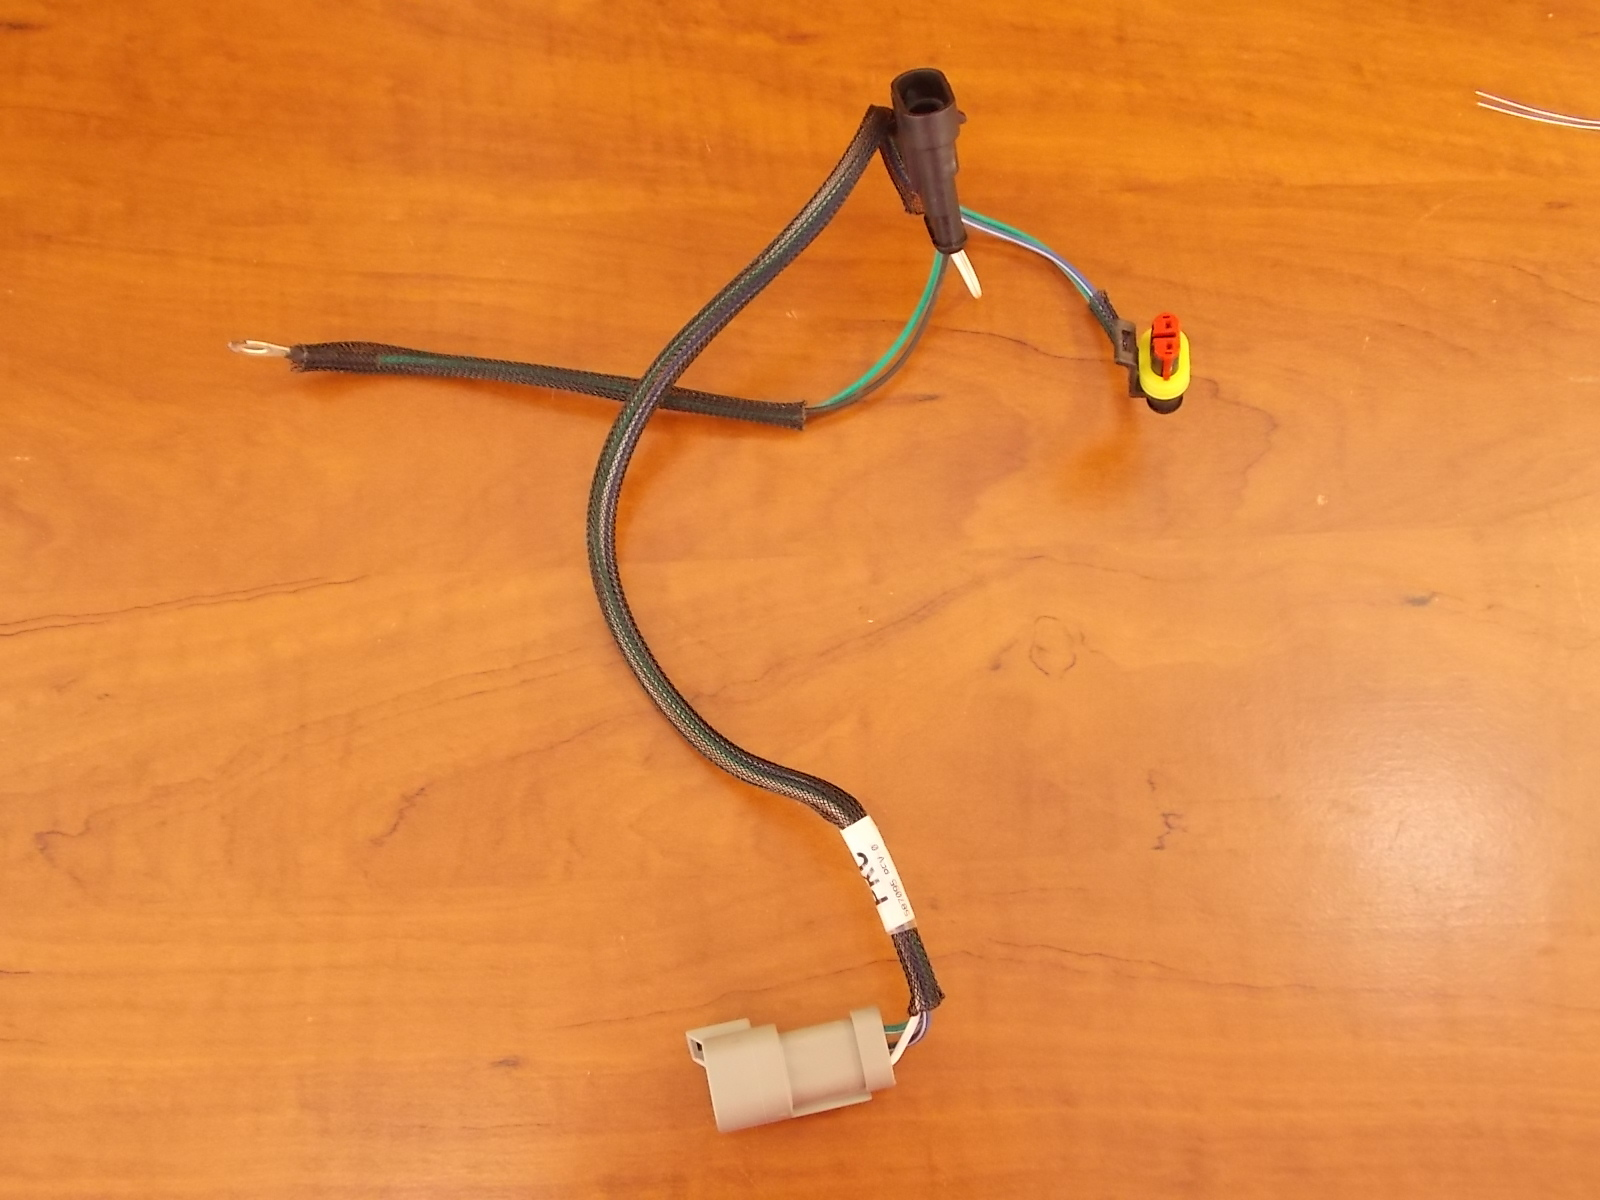 22822 mwh johnson evinrude wire harness t t assy 2010 2015 15 25 30 0587095 johnson evinrude wire harness t & t assy 2010 2015 15 25 30 Fraitliner Diesel Wireing Harness at gsmx.co